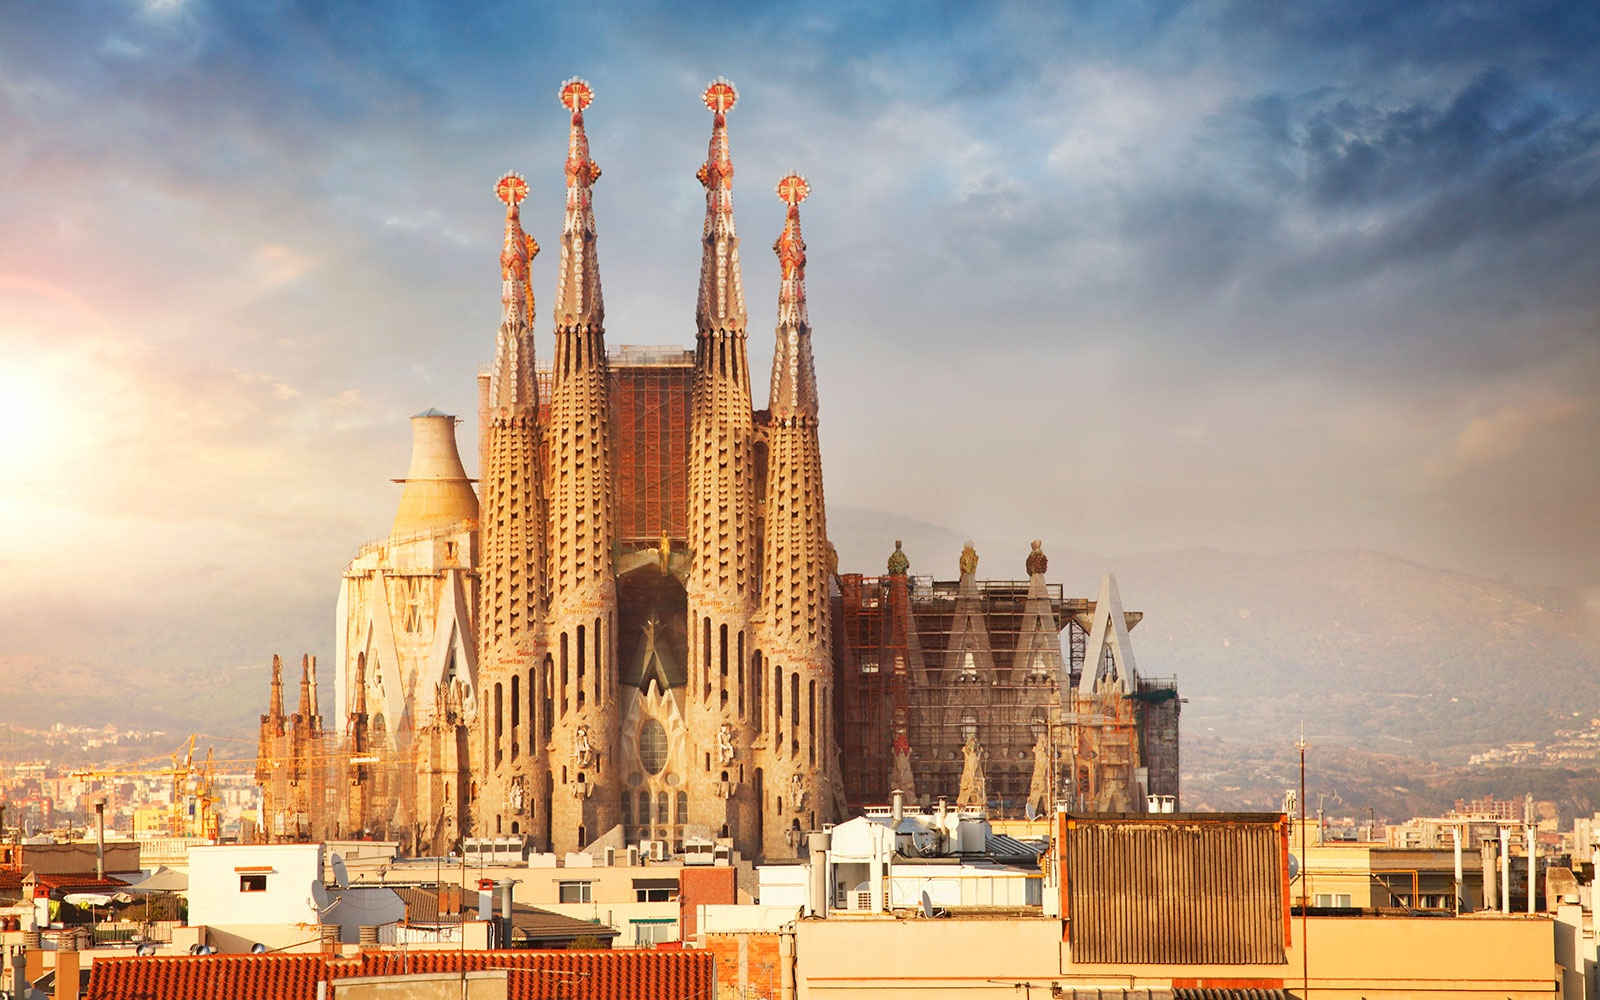 Barcelona 39 s sagrada familia expected to finish in 2026 for Barcelona famila